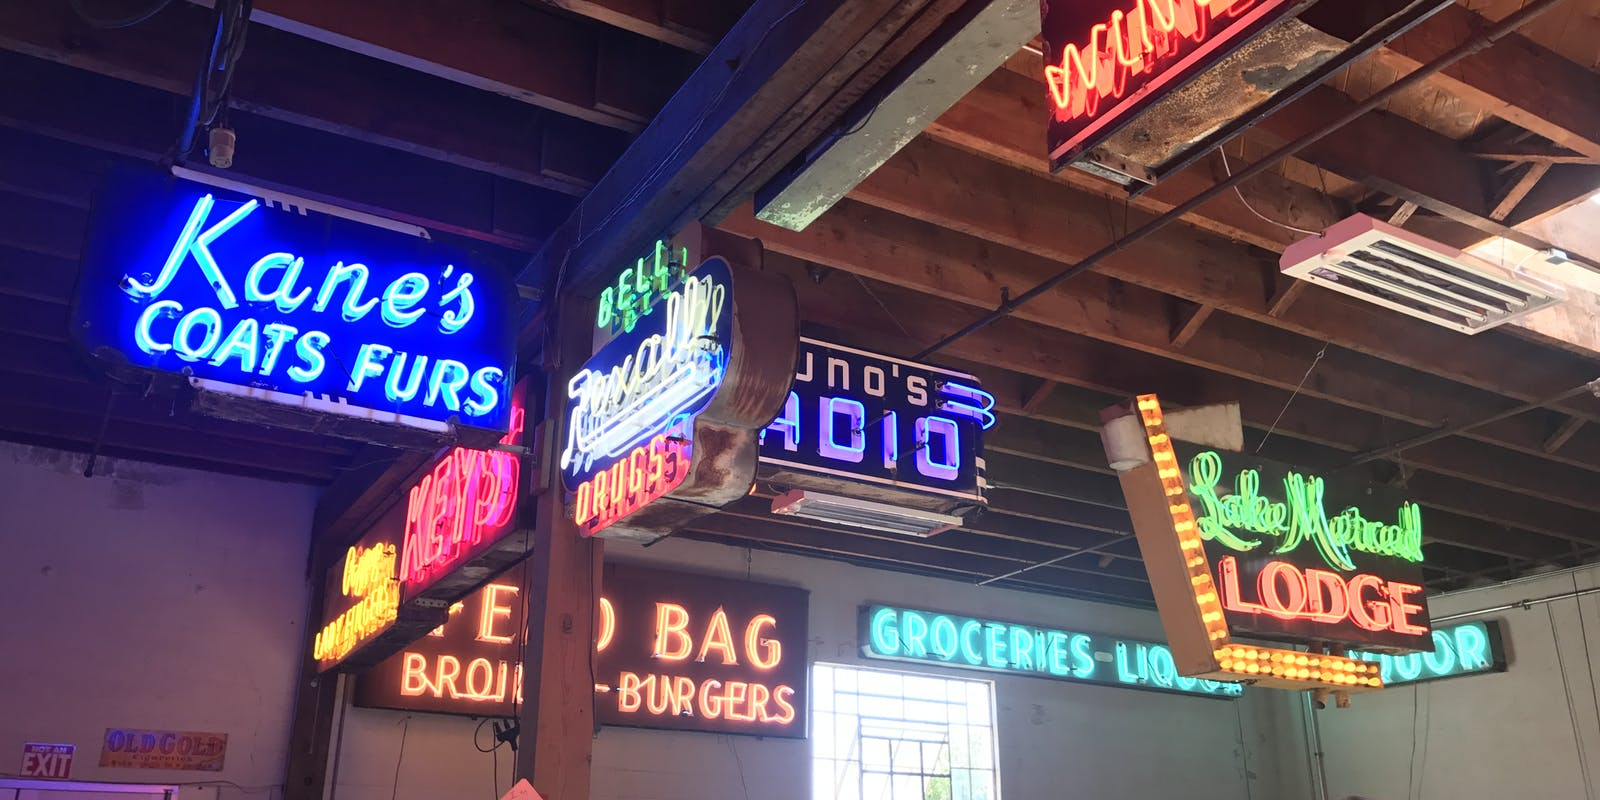 An impressive collection of neon signs.